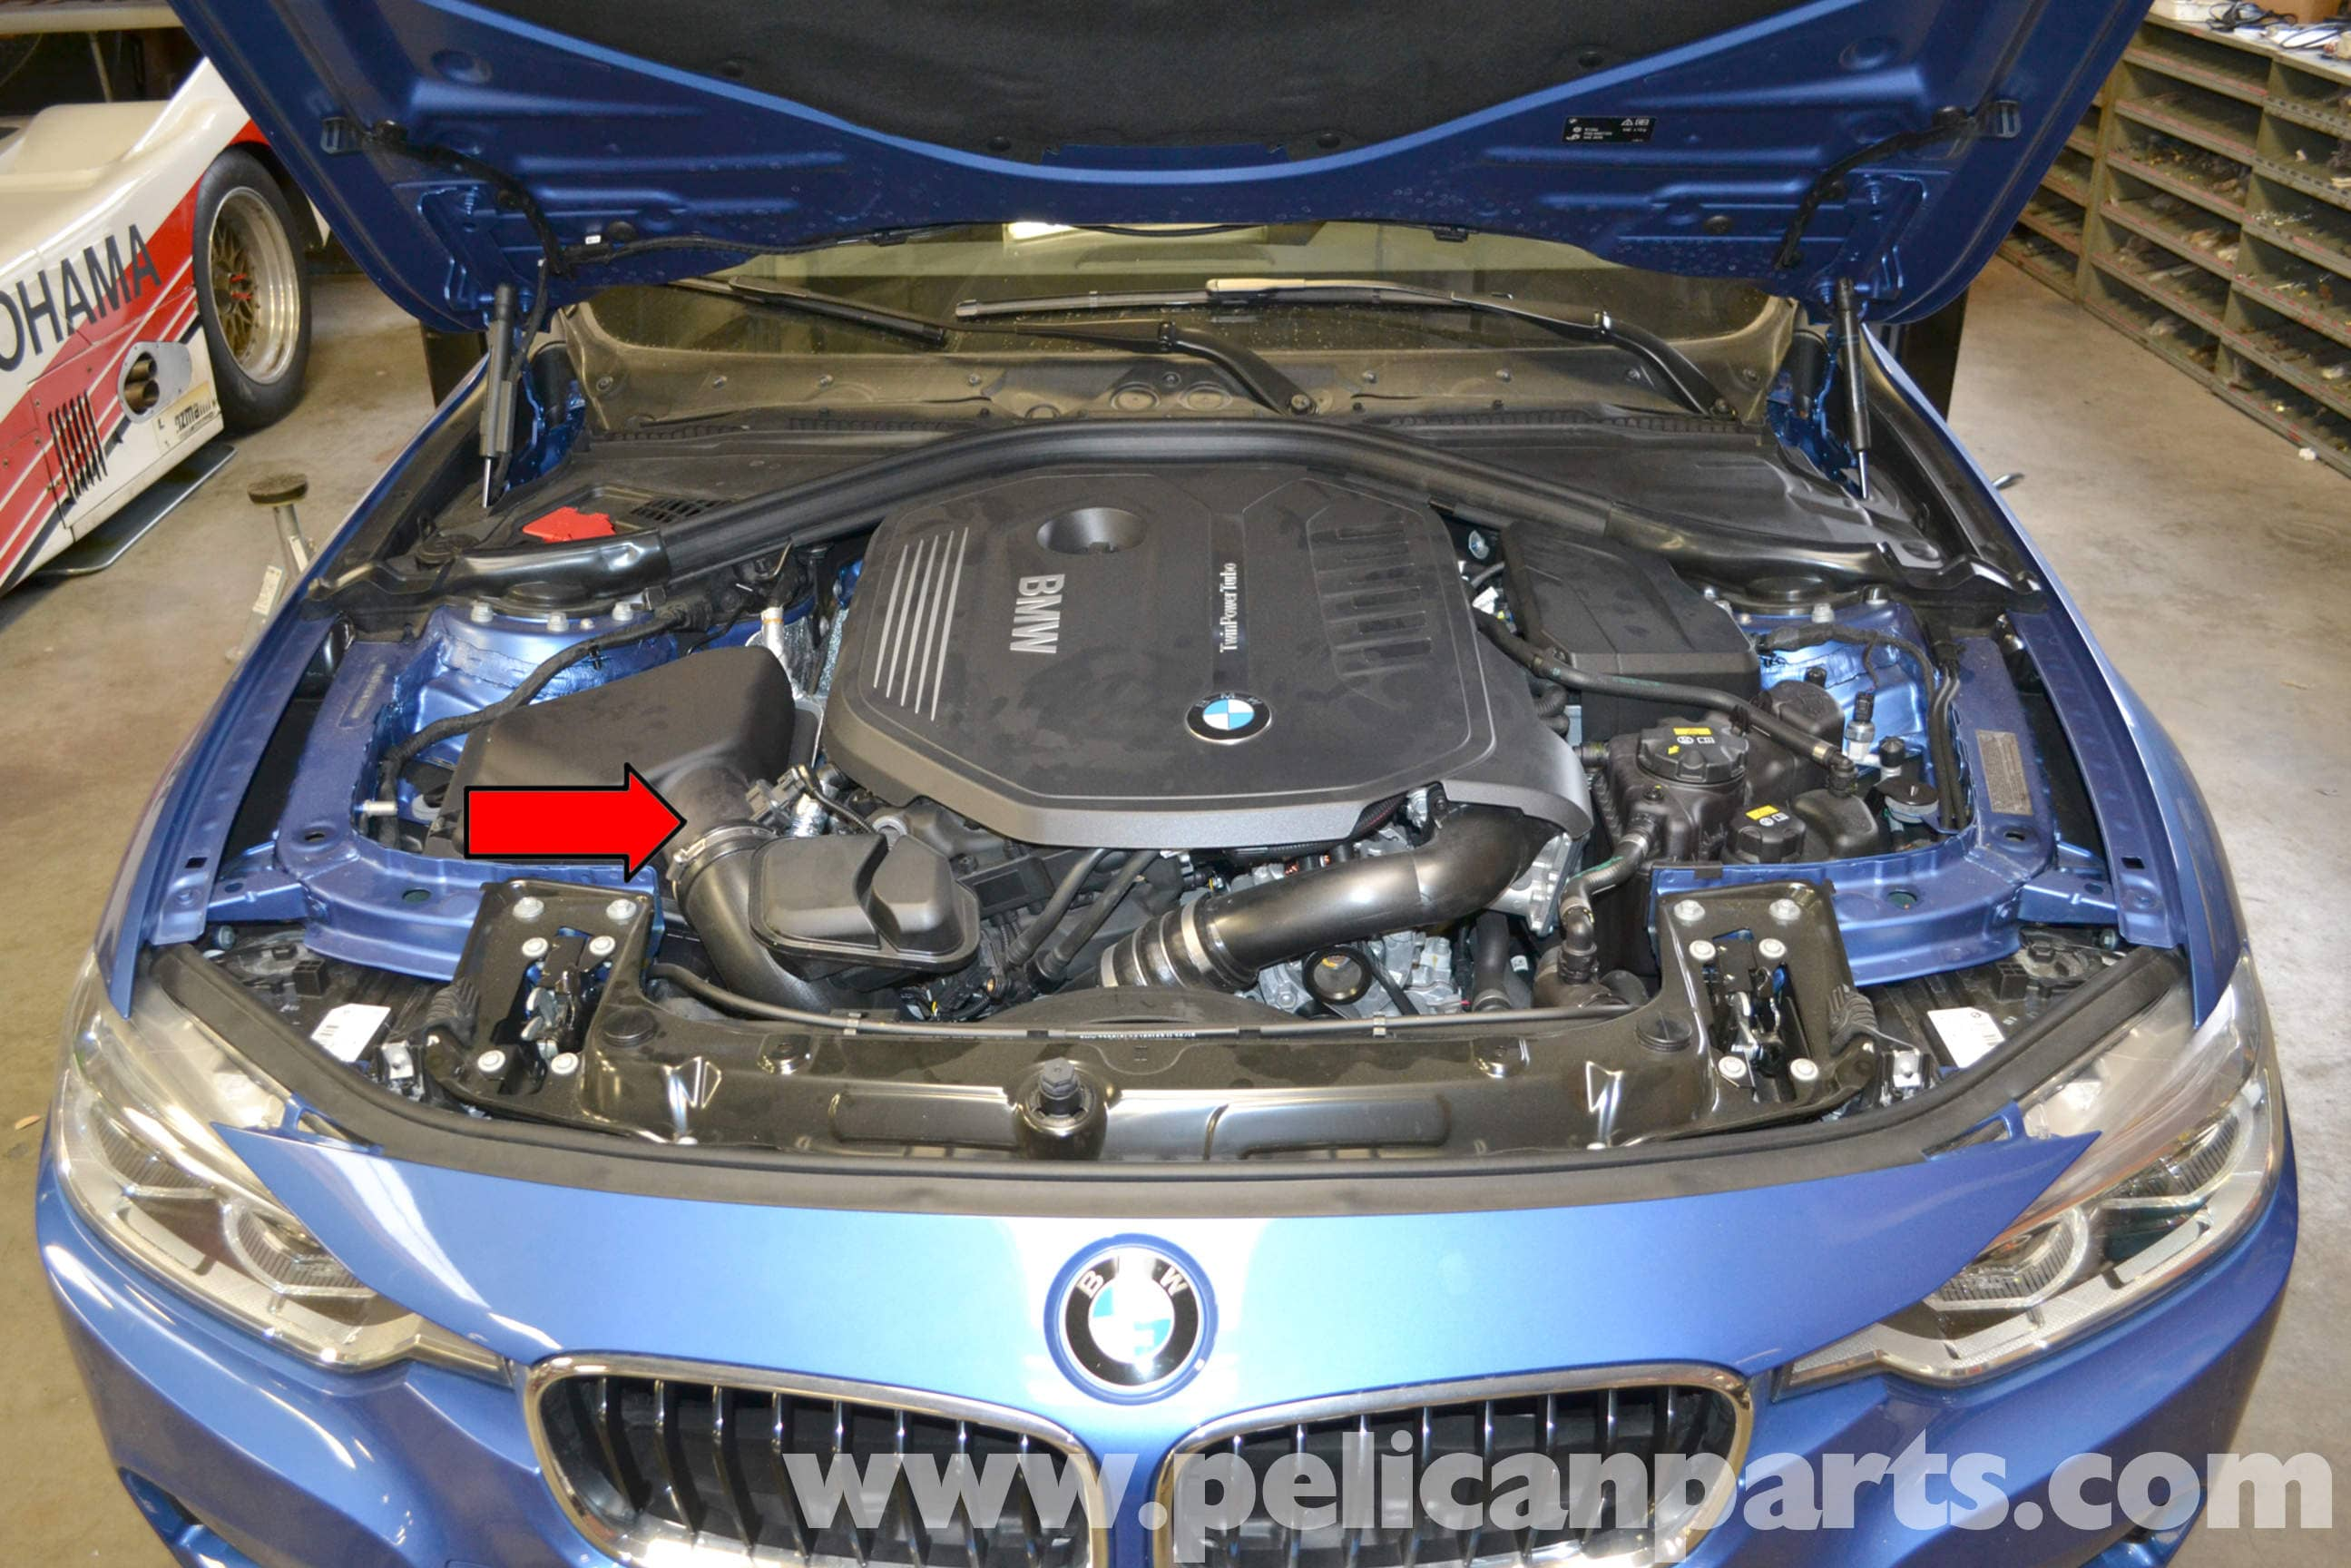 Pelican Technical Article - BMW F30 3-Series - MAF Sensor Replacement